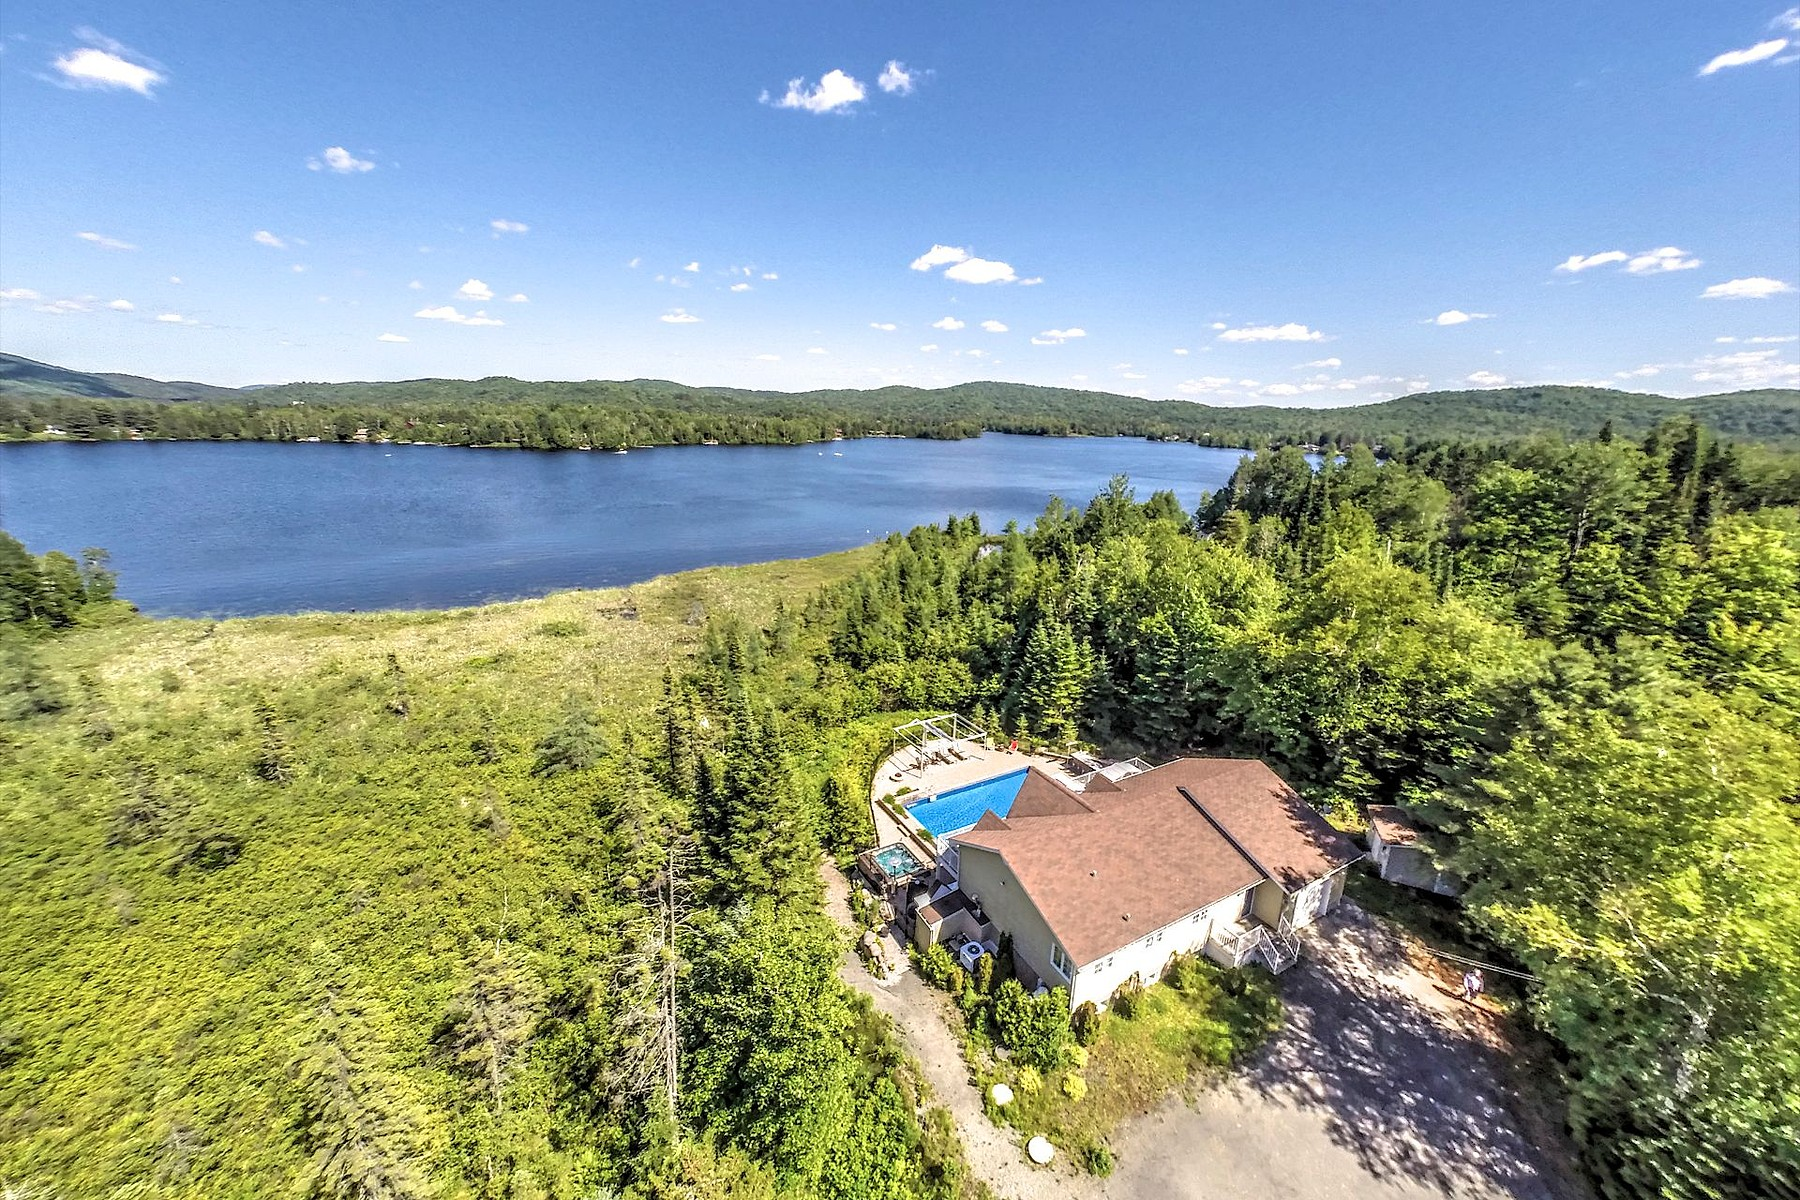 Single Family Home for Sale at Waterfront home Lac Ludger 358 Boul. Rolland-Cloutier, Lantier, Quebec, J0T1V0 Canada